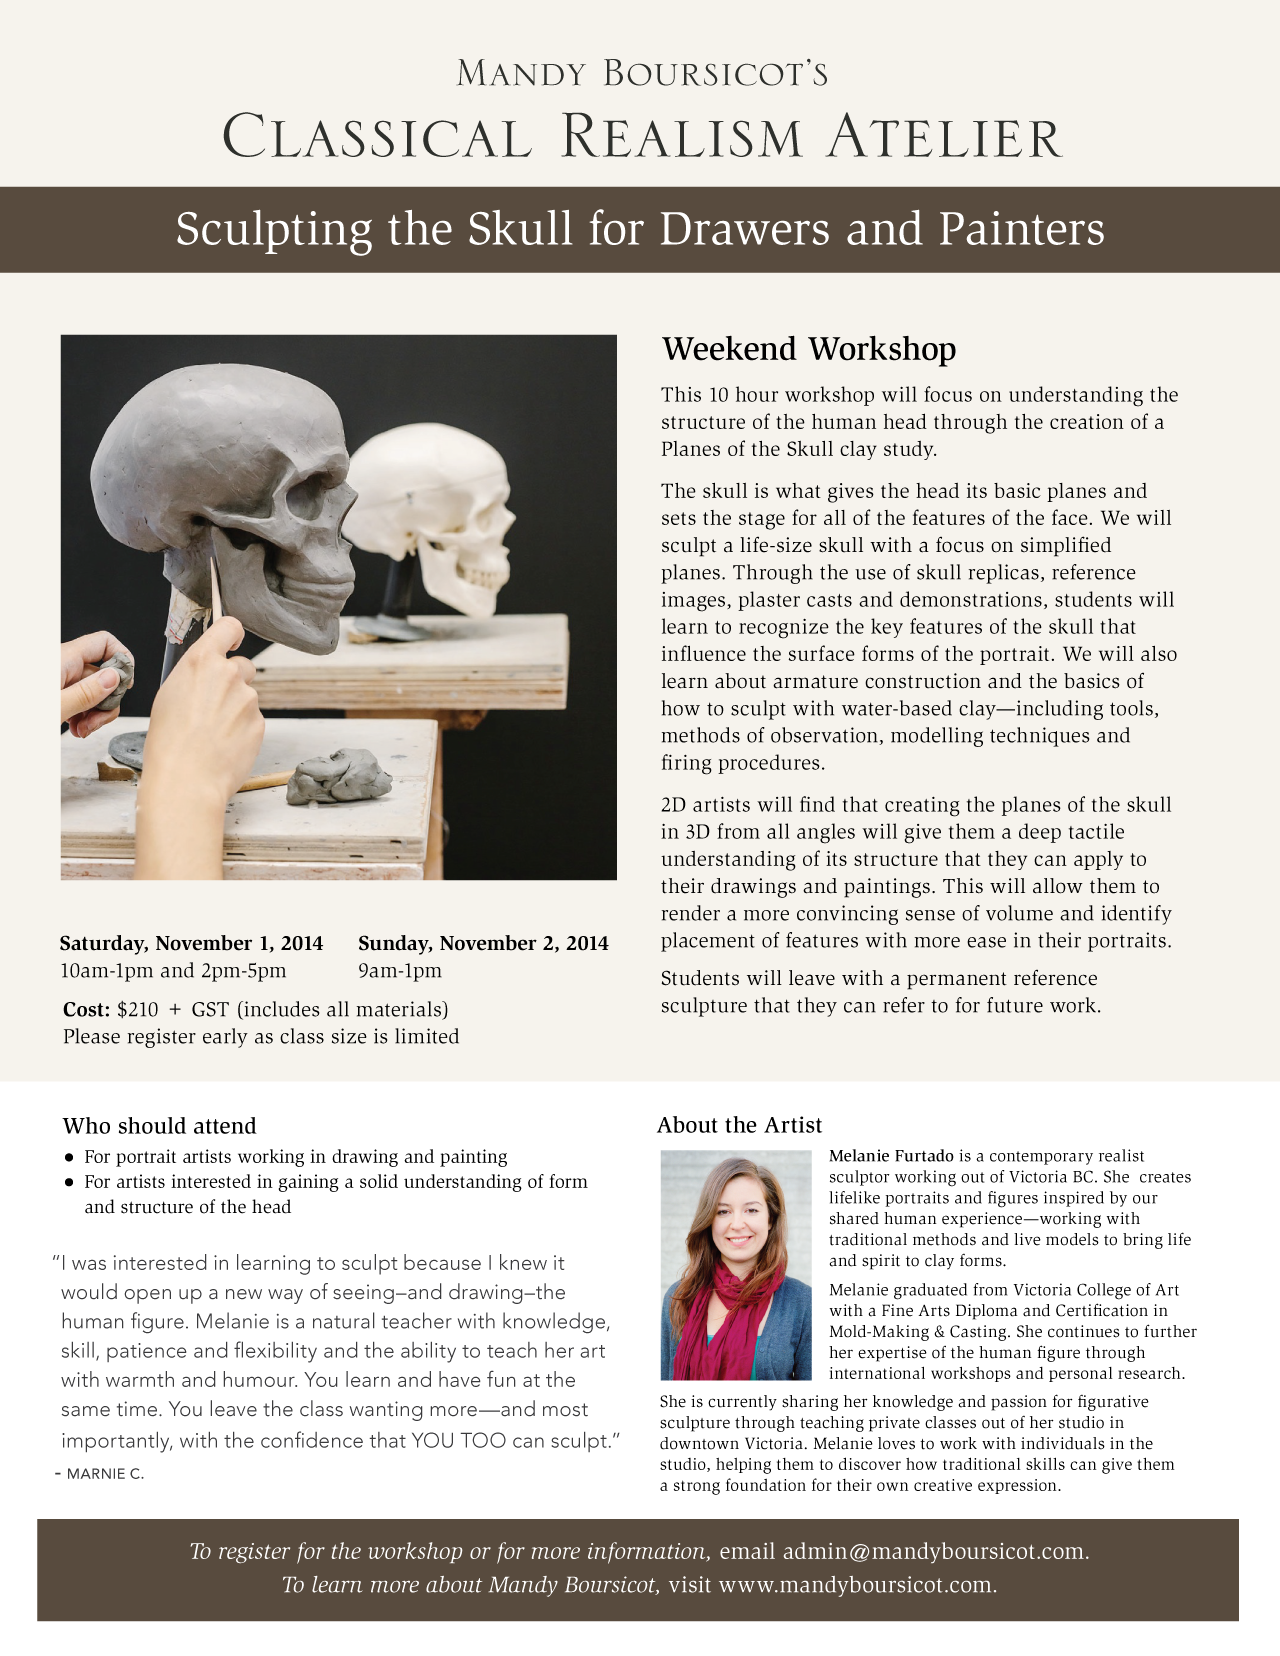 November Weekend Workshop: Sculpting for Drawers and Painters